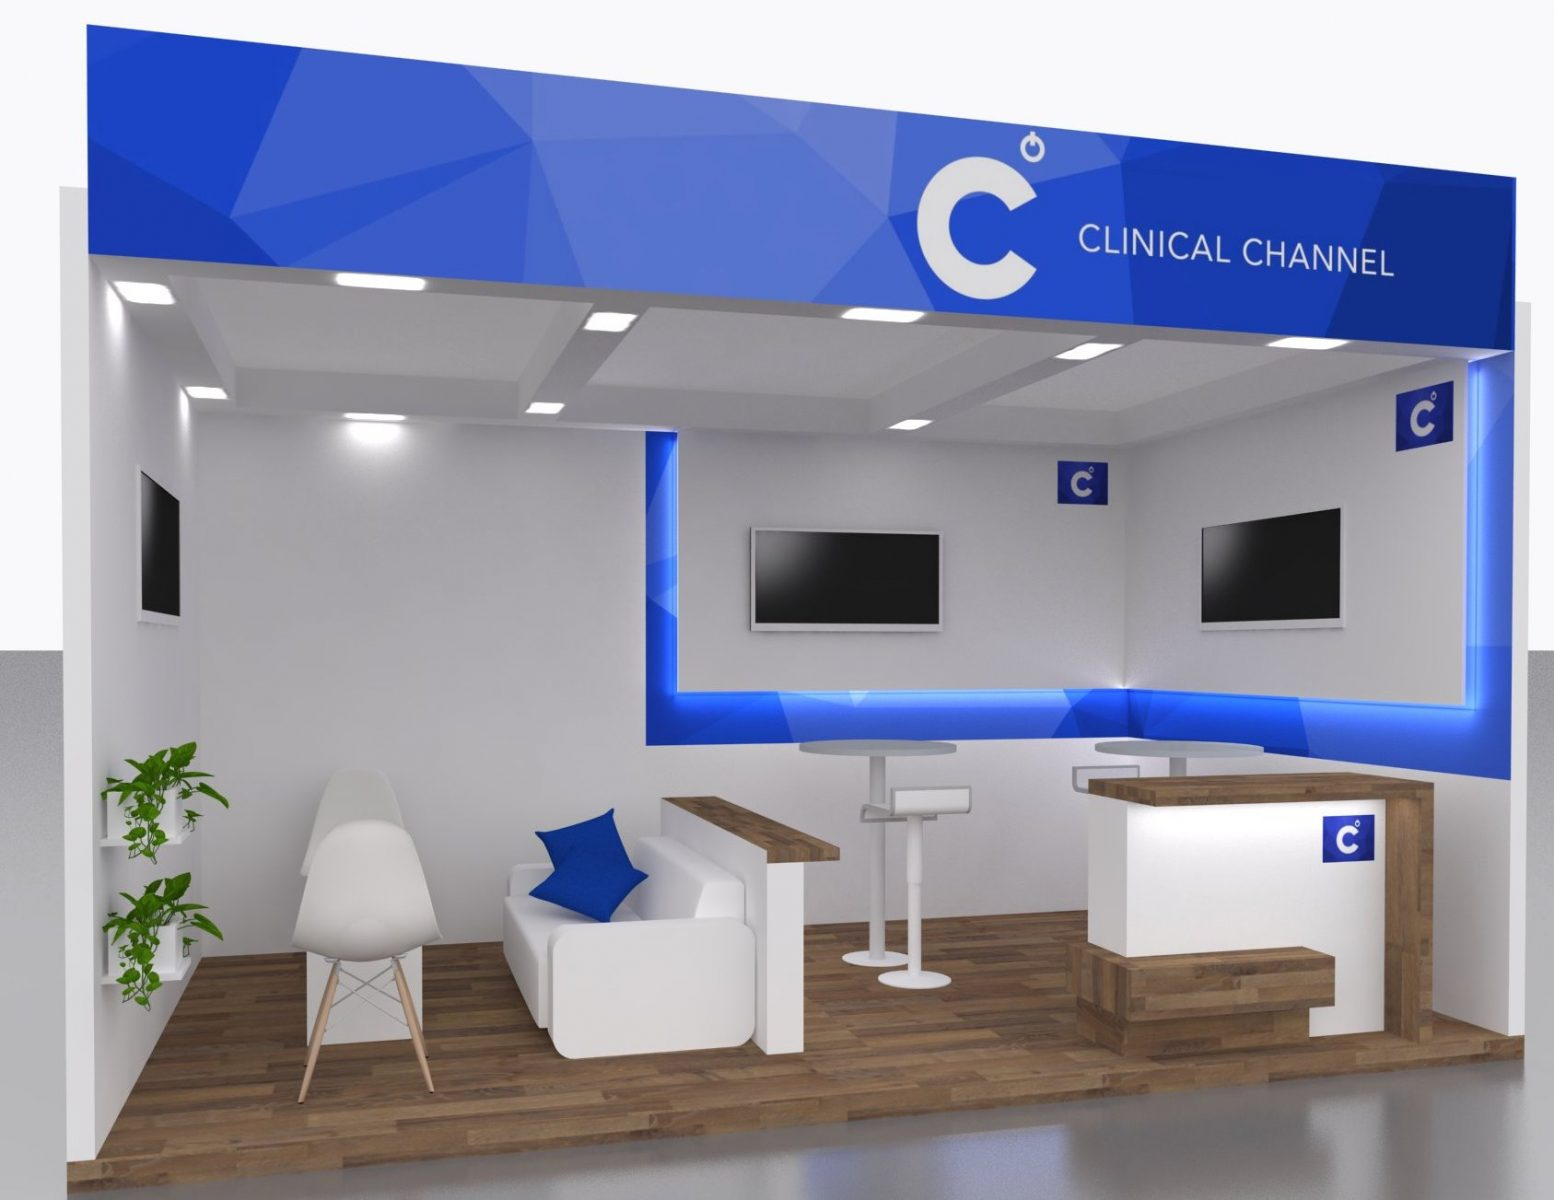 Clinical Channel